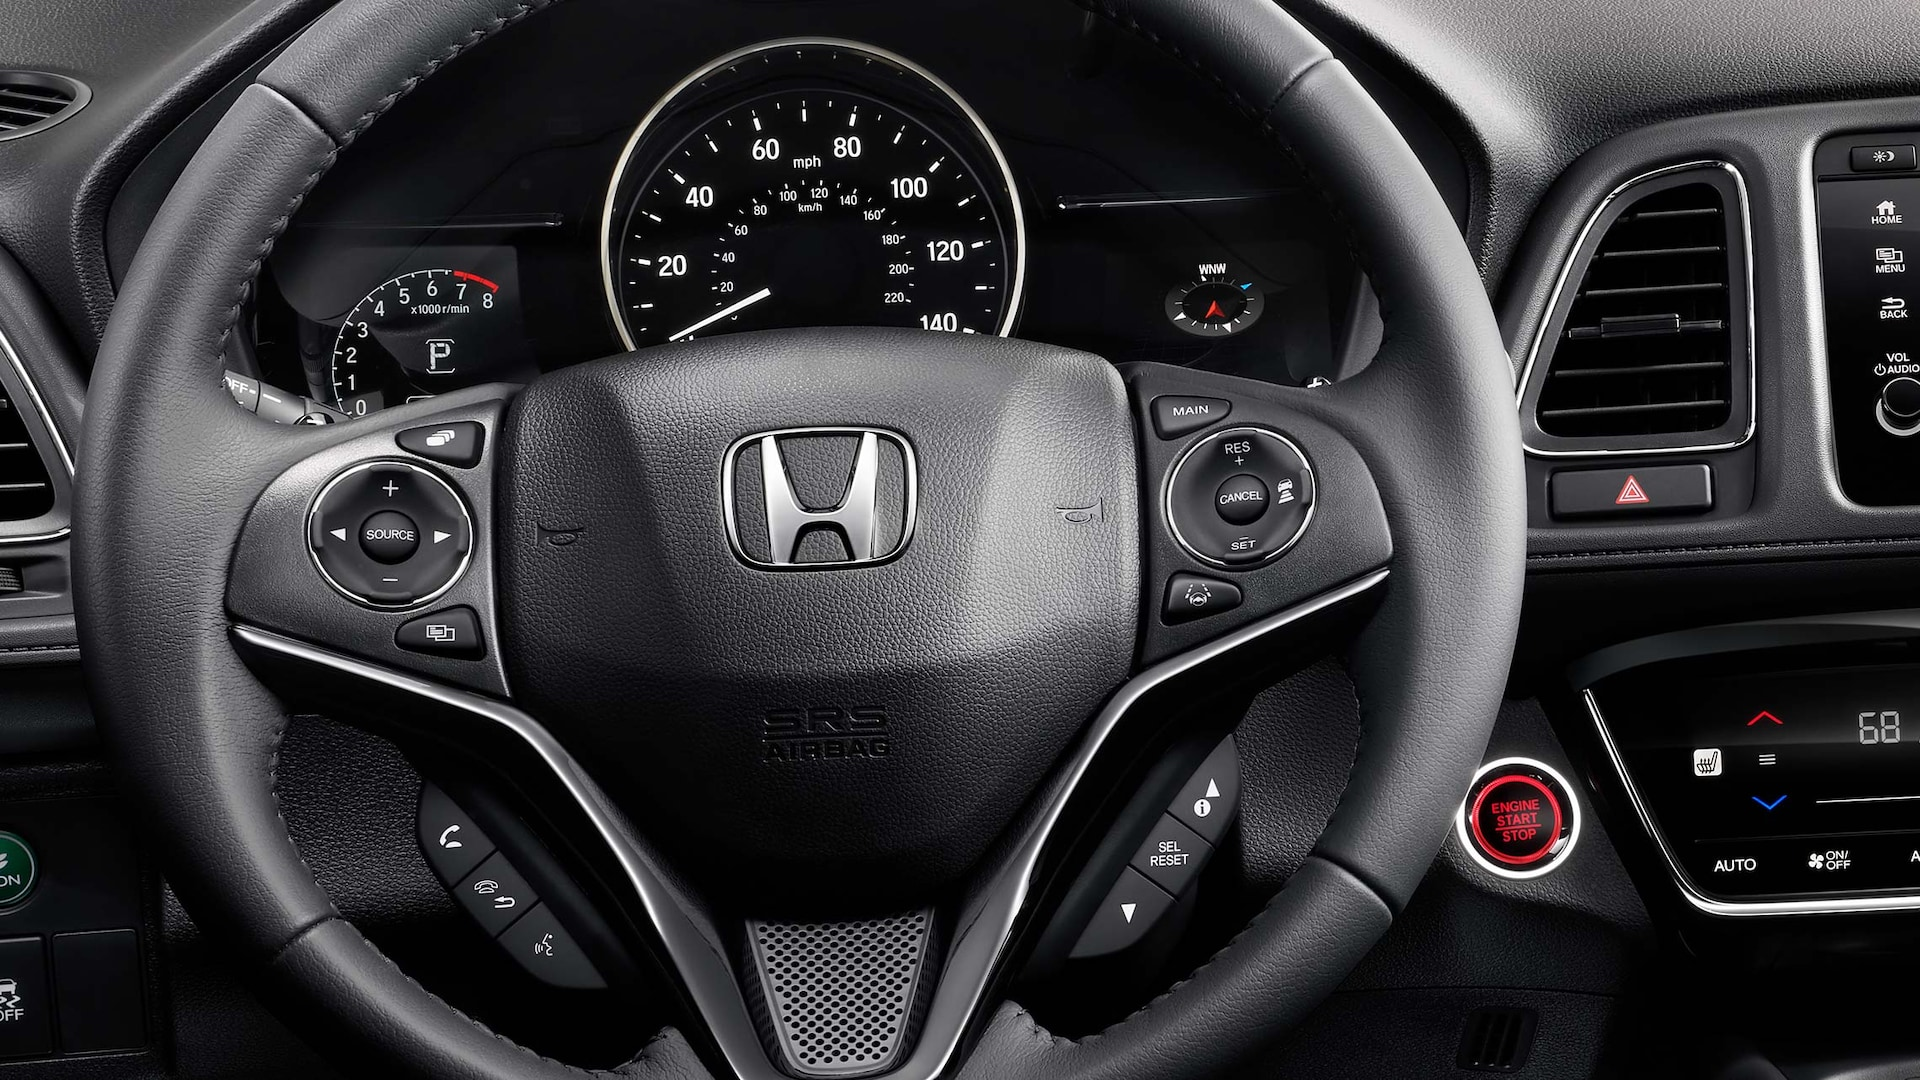 Steering wheel and dashboard detail in the 2019 Honda HR-V Touring in Black Leather.